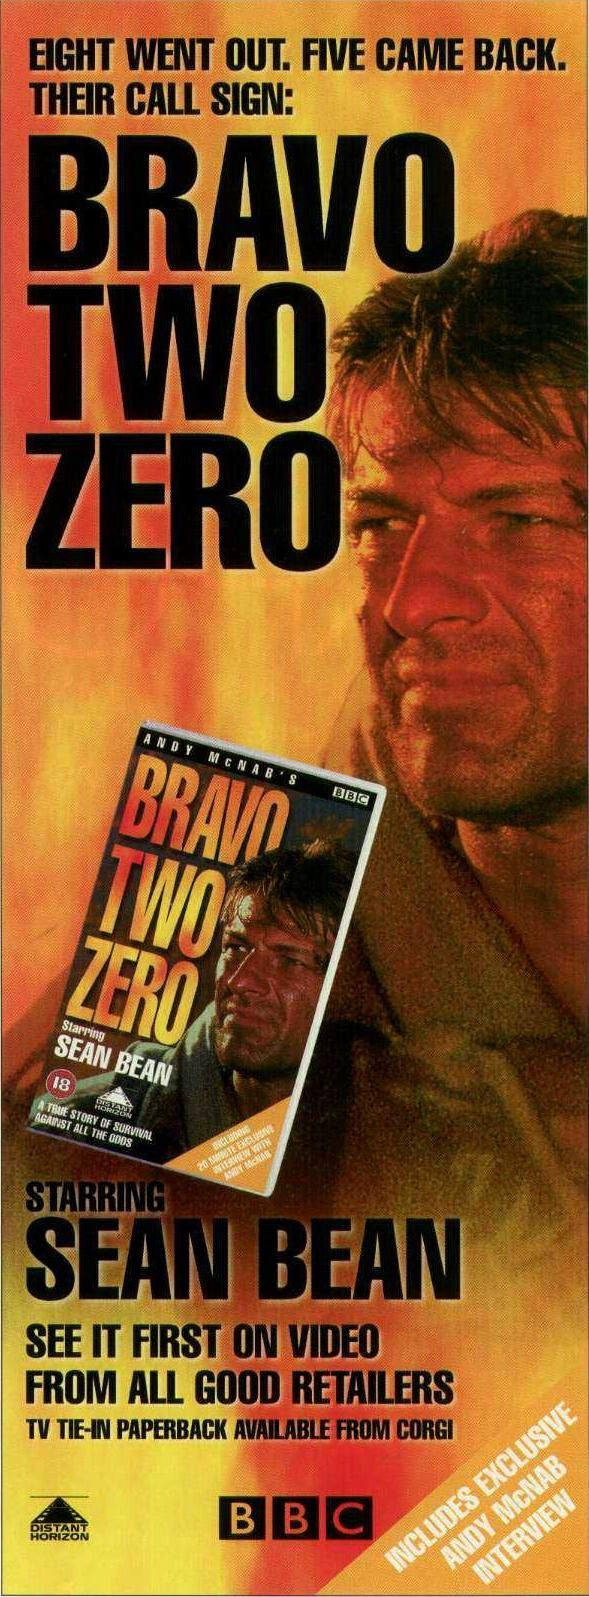 Bravo Two Zero Magazine Ad supposed to be a true story, but doubts remain about veracity